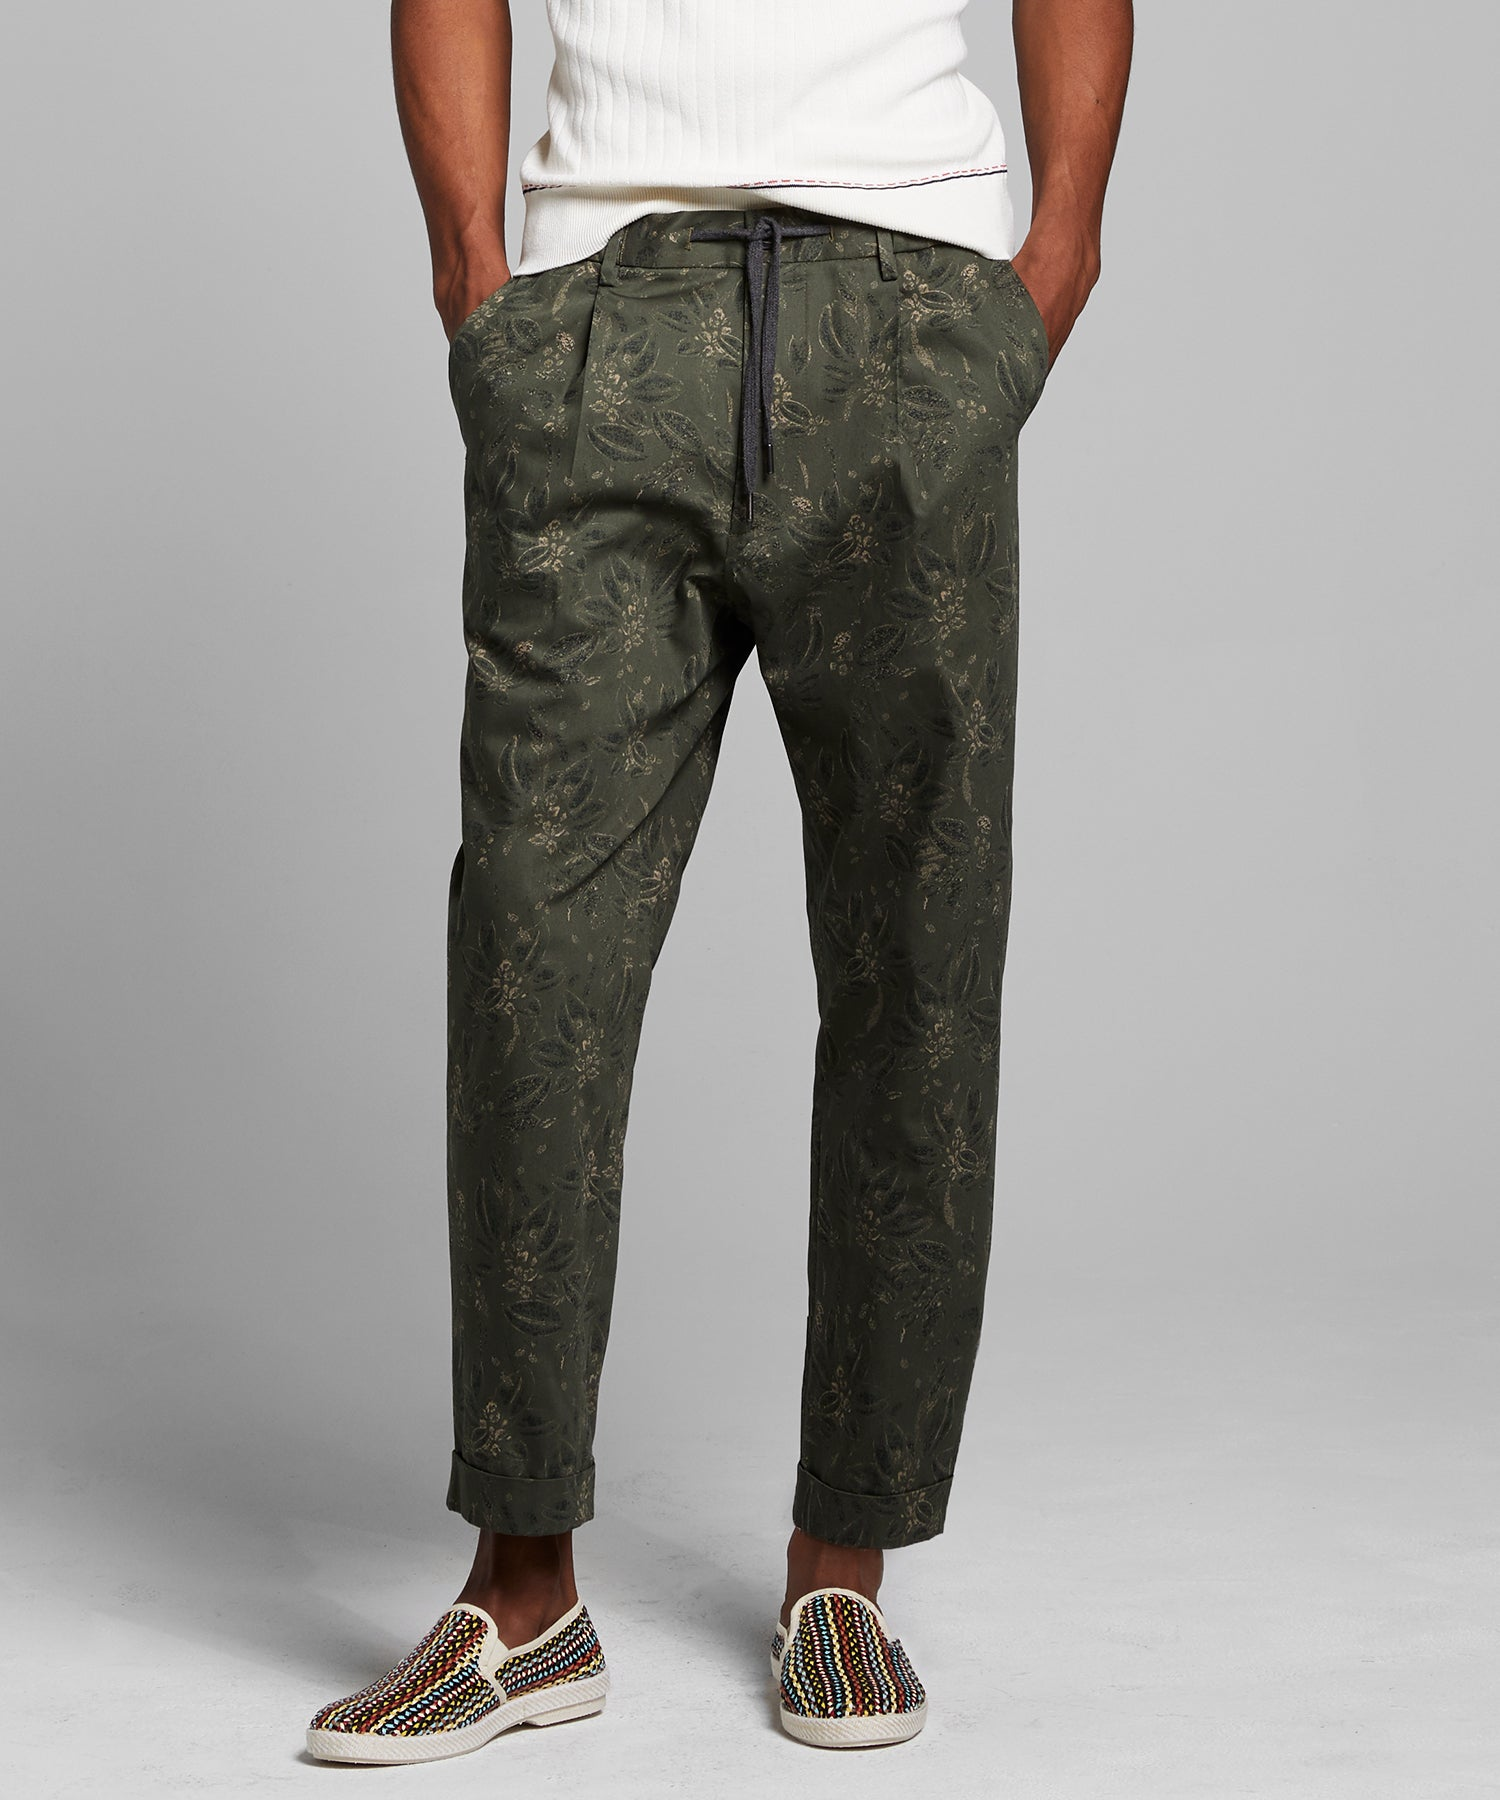 Italian Floral Traveler Dress Pant in Olive